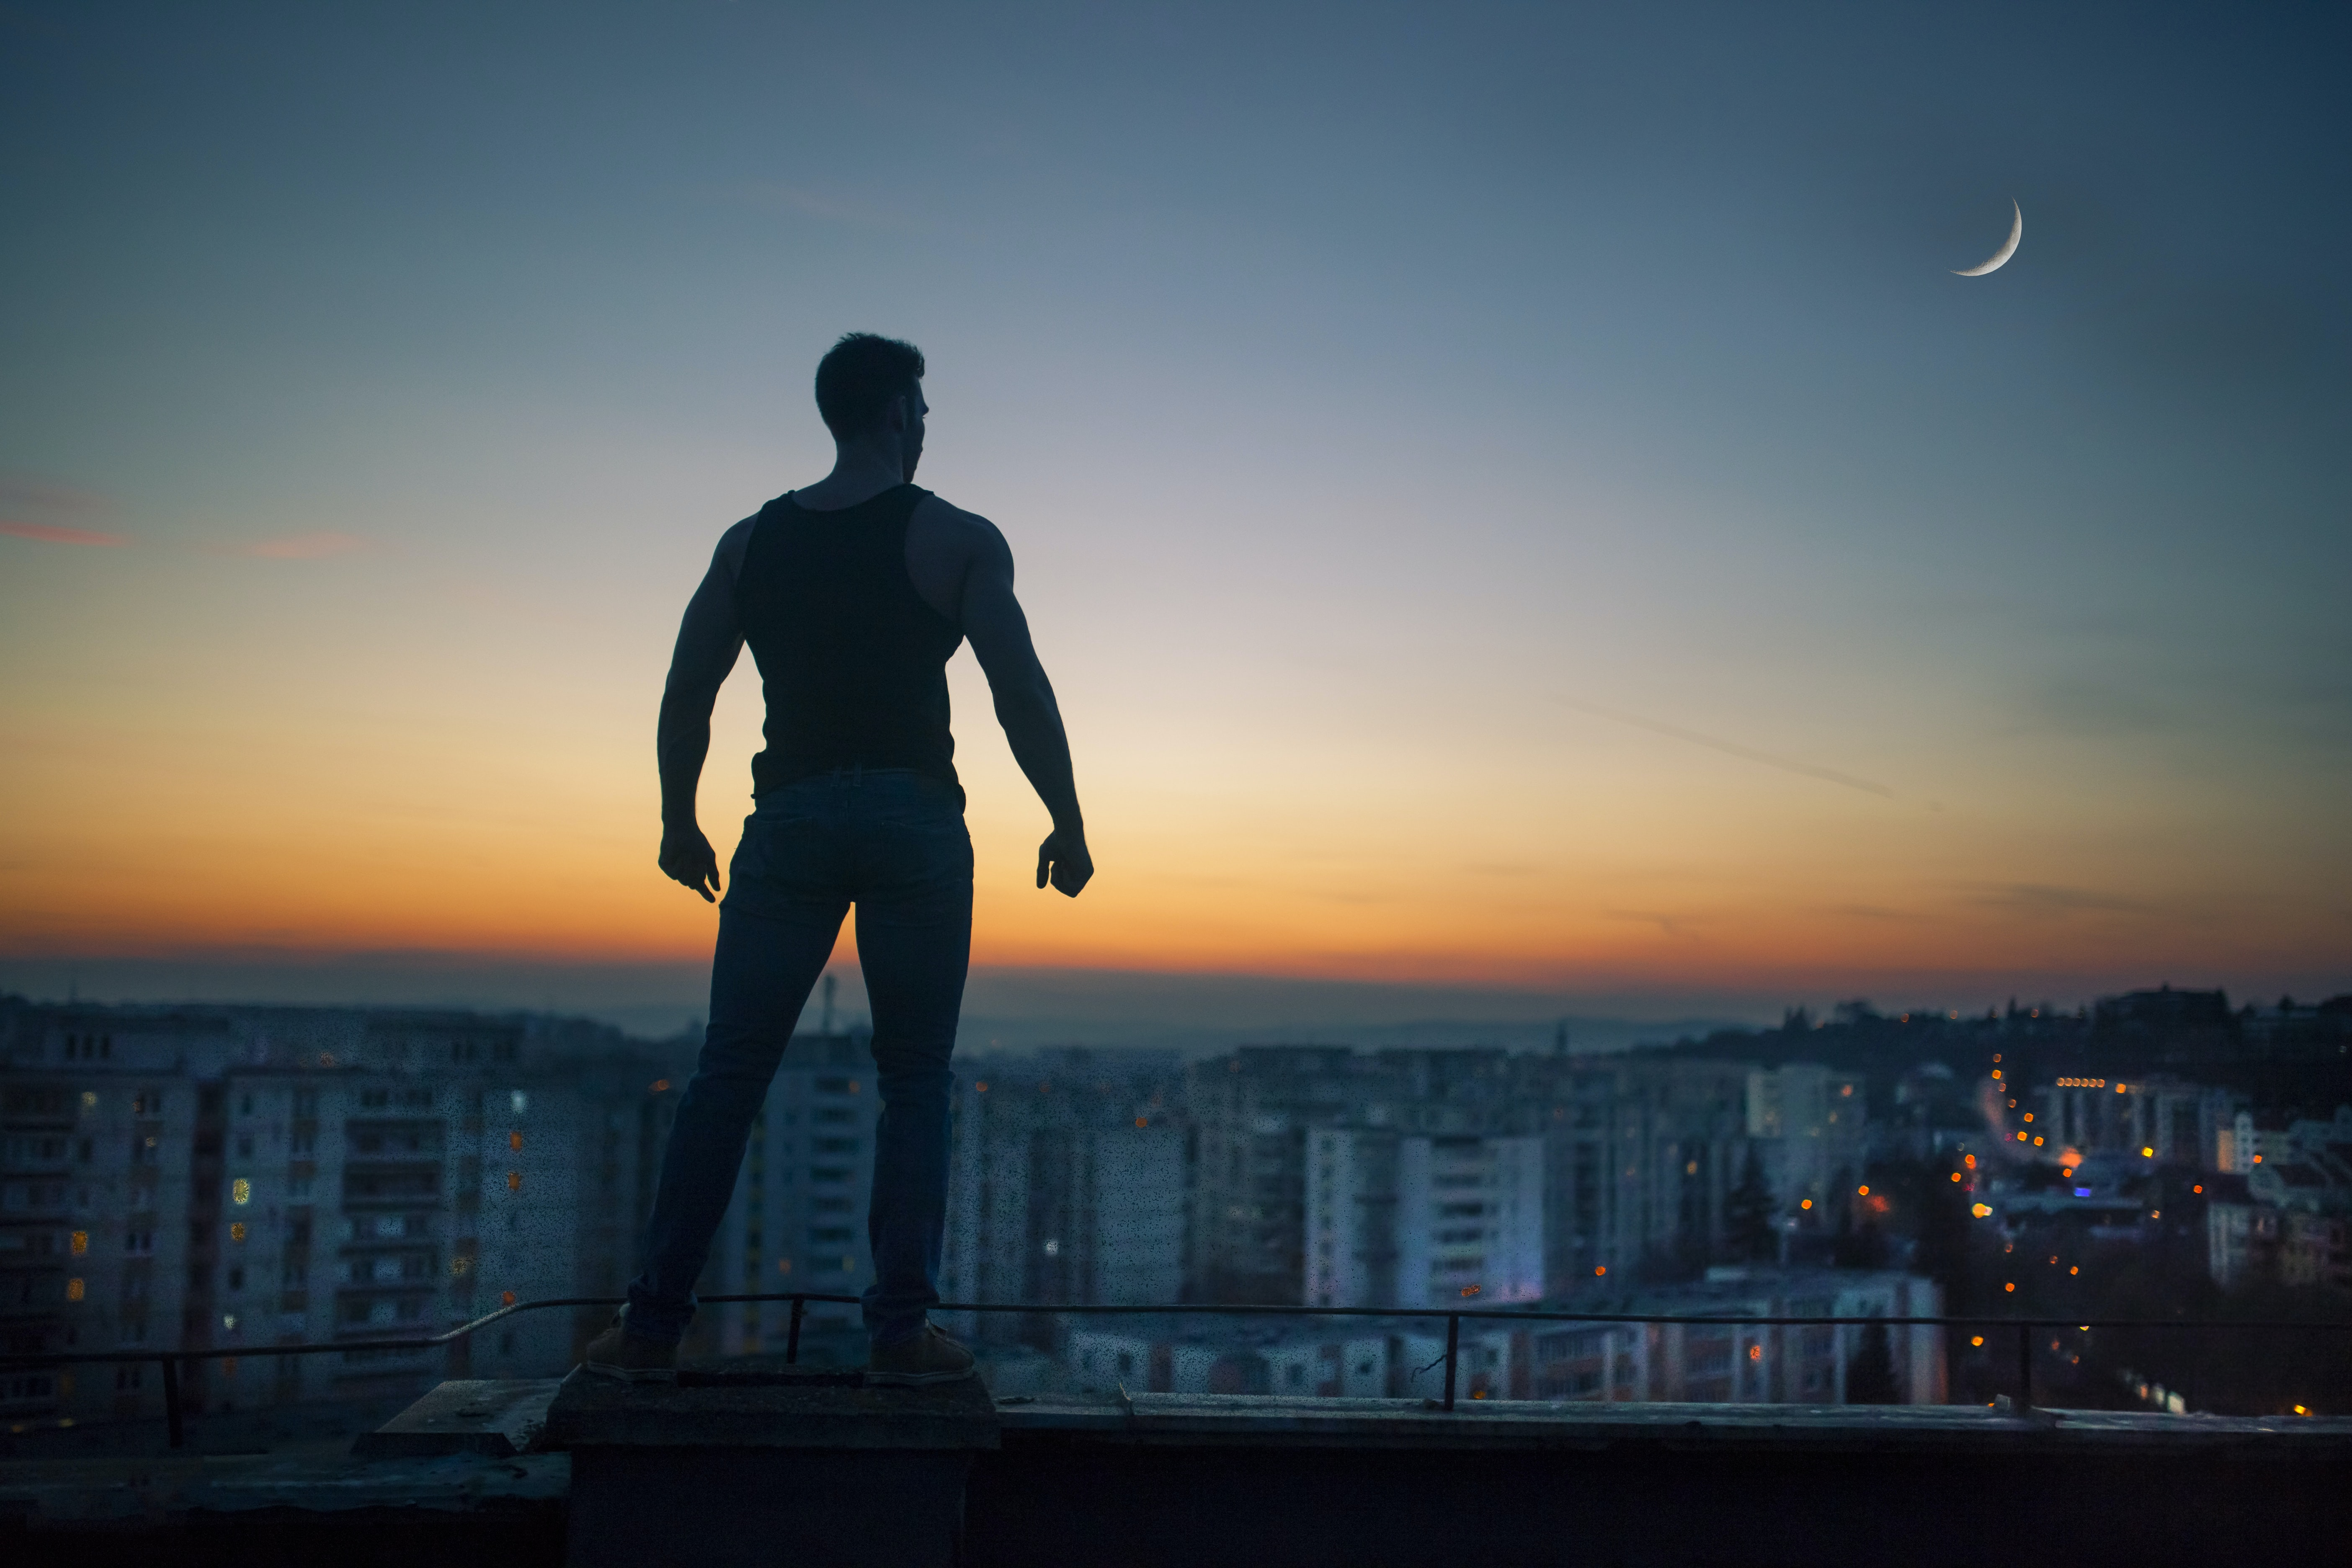 A silhouette of a man standing on a building roof and looking of into the city at sunset